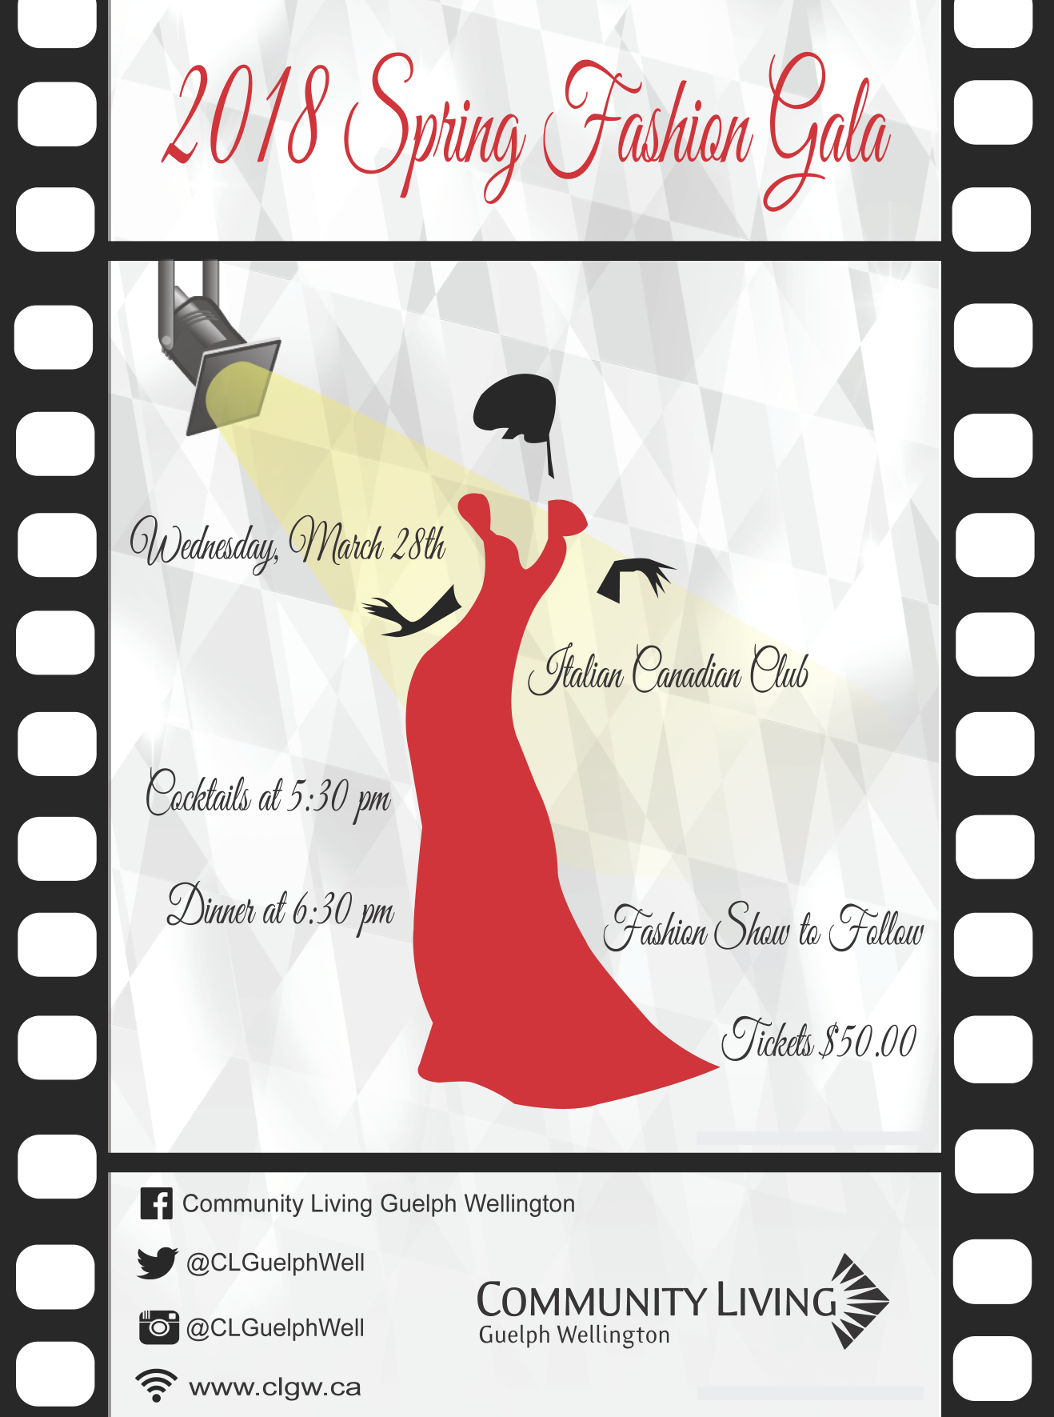 Spring Fashion Gala - March 28 - Itialian Canadian Club of Canada $50 5:30 cocktails, Dinner at 6:30pm Fashion Show to Follow tickets online or available from Fern at 519-824-2480.